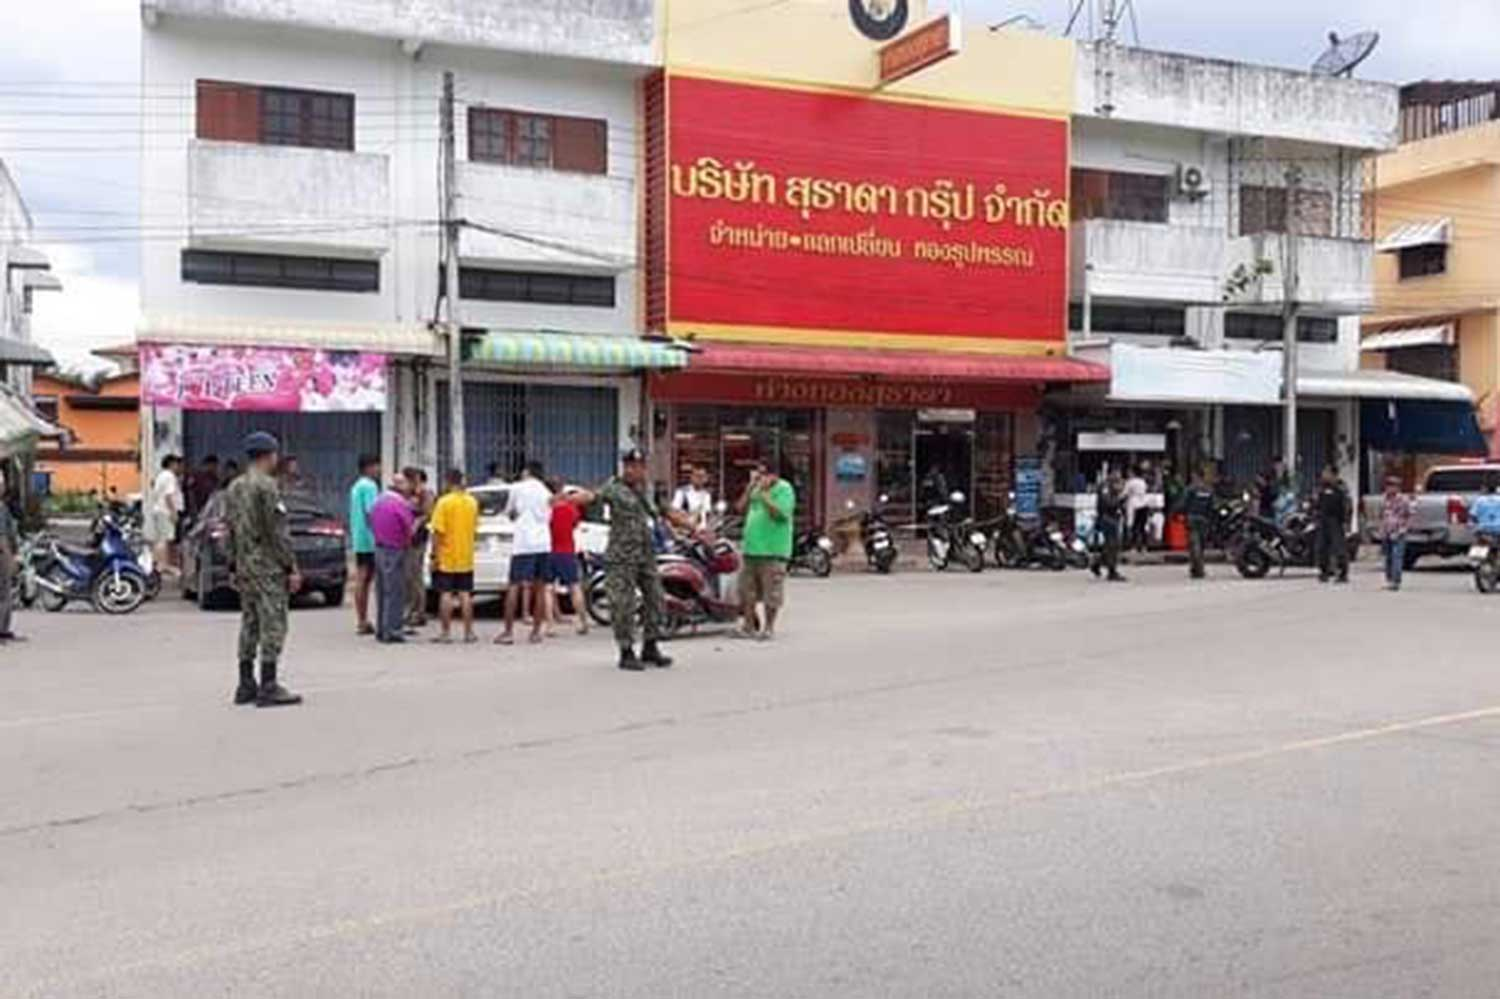 Robbers in ranger uniforms hit Songkhla gold shop